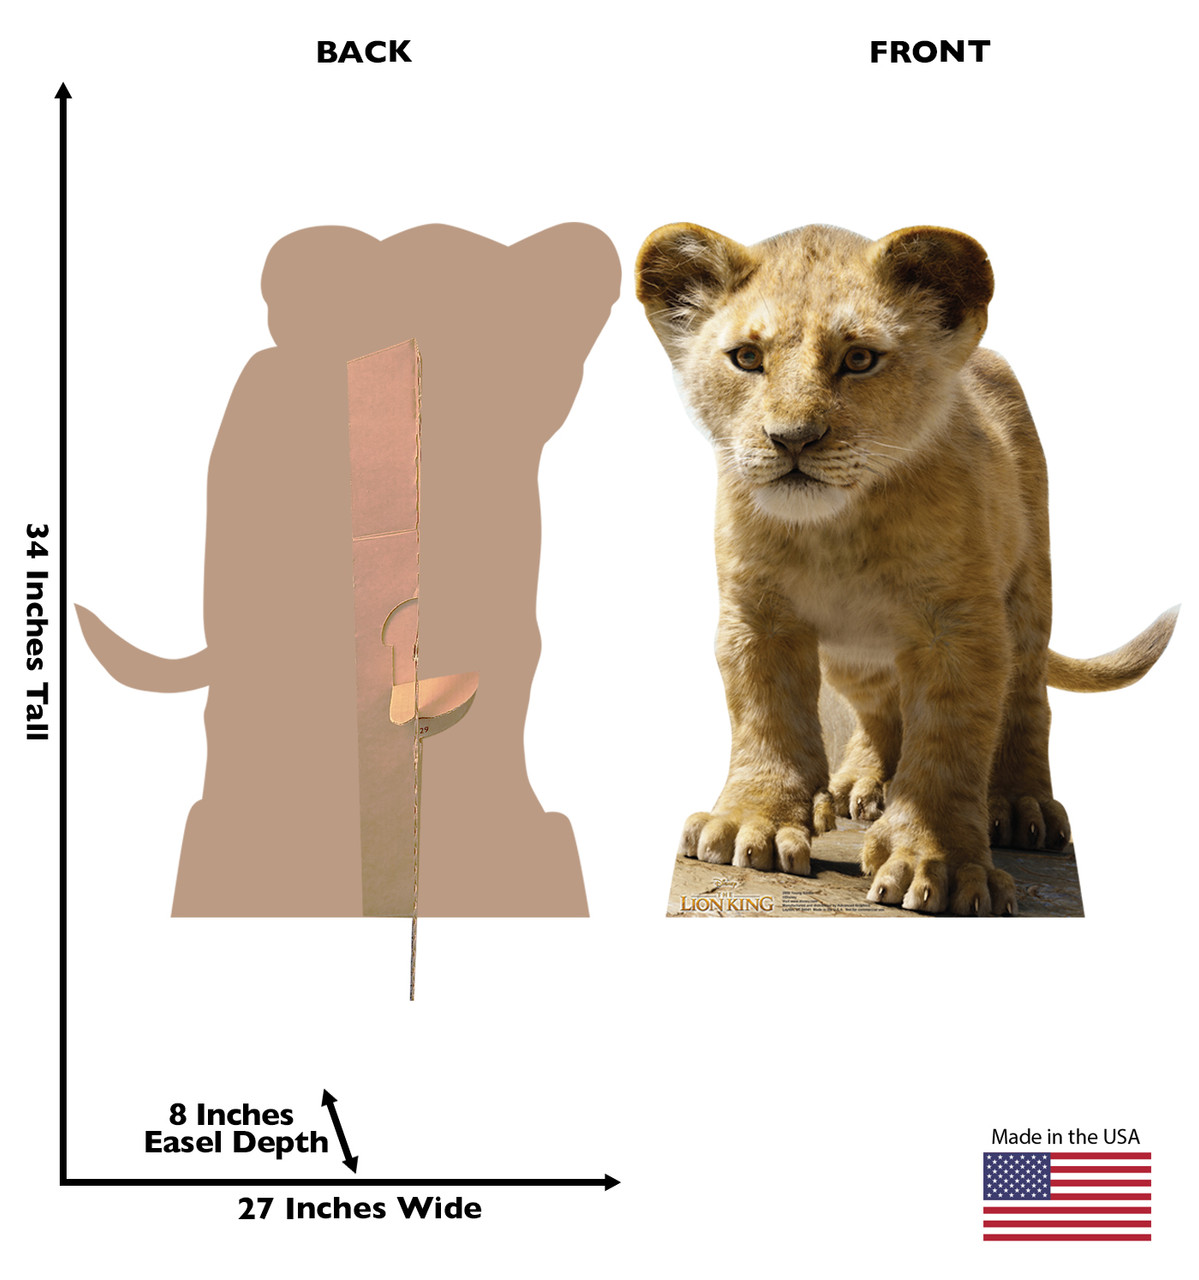 Life-size cardboard standee of Young Simba from Disney's live action film The Lion King Front and Back View